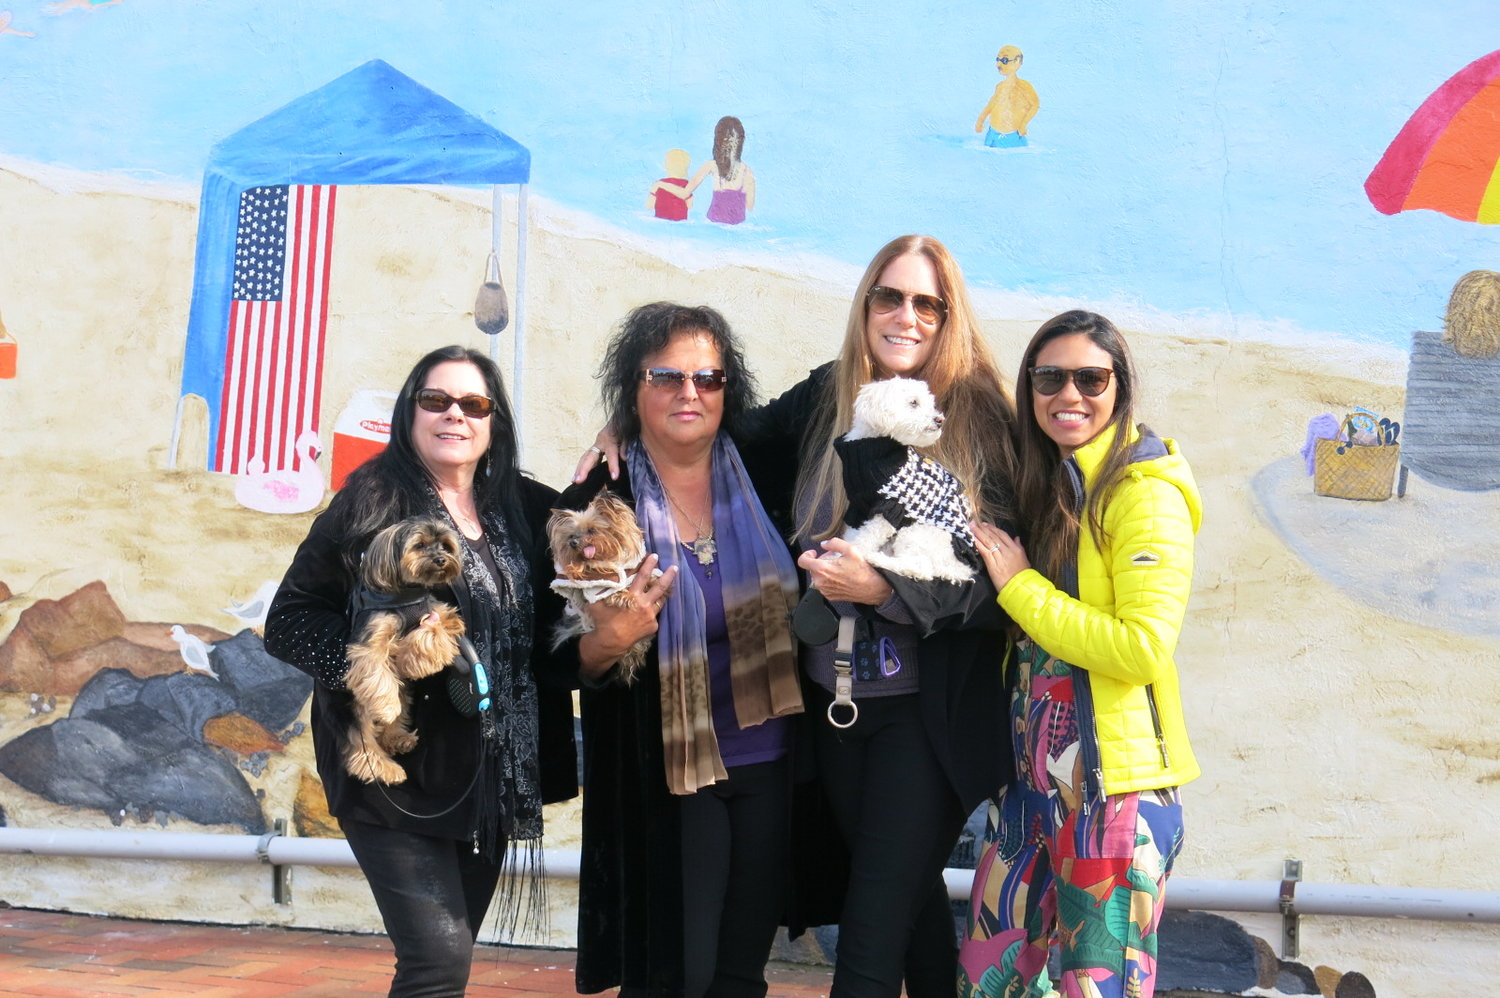 Several artists worked on the Bayville Centennial Mural to commemorate the village's 100th birthday, including, from left, Deborah Webbe, Anna Laruccia, Barbara Wendt-Keller and Pricila Modesto. Laruccia created the view of a typical beach day in Bayville.